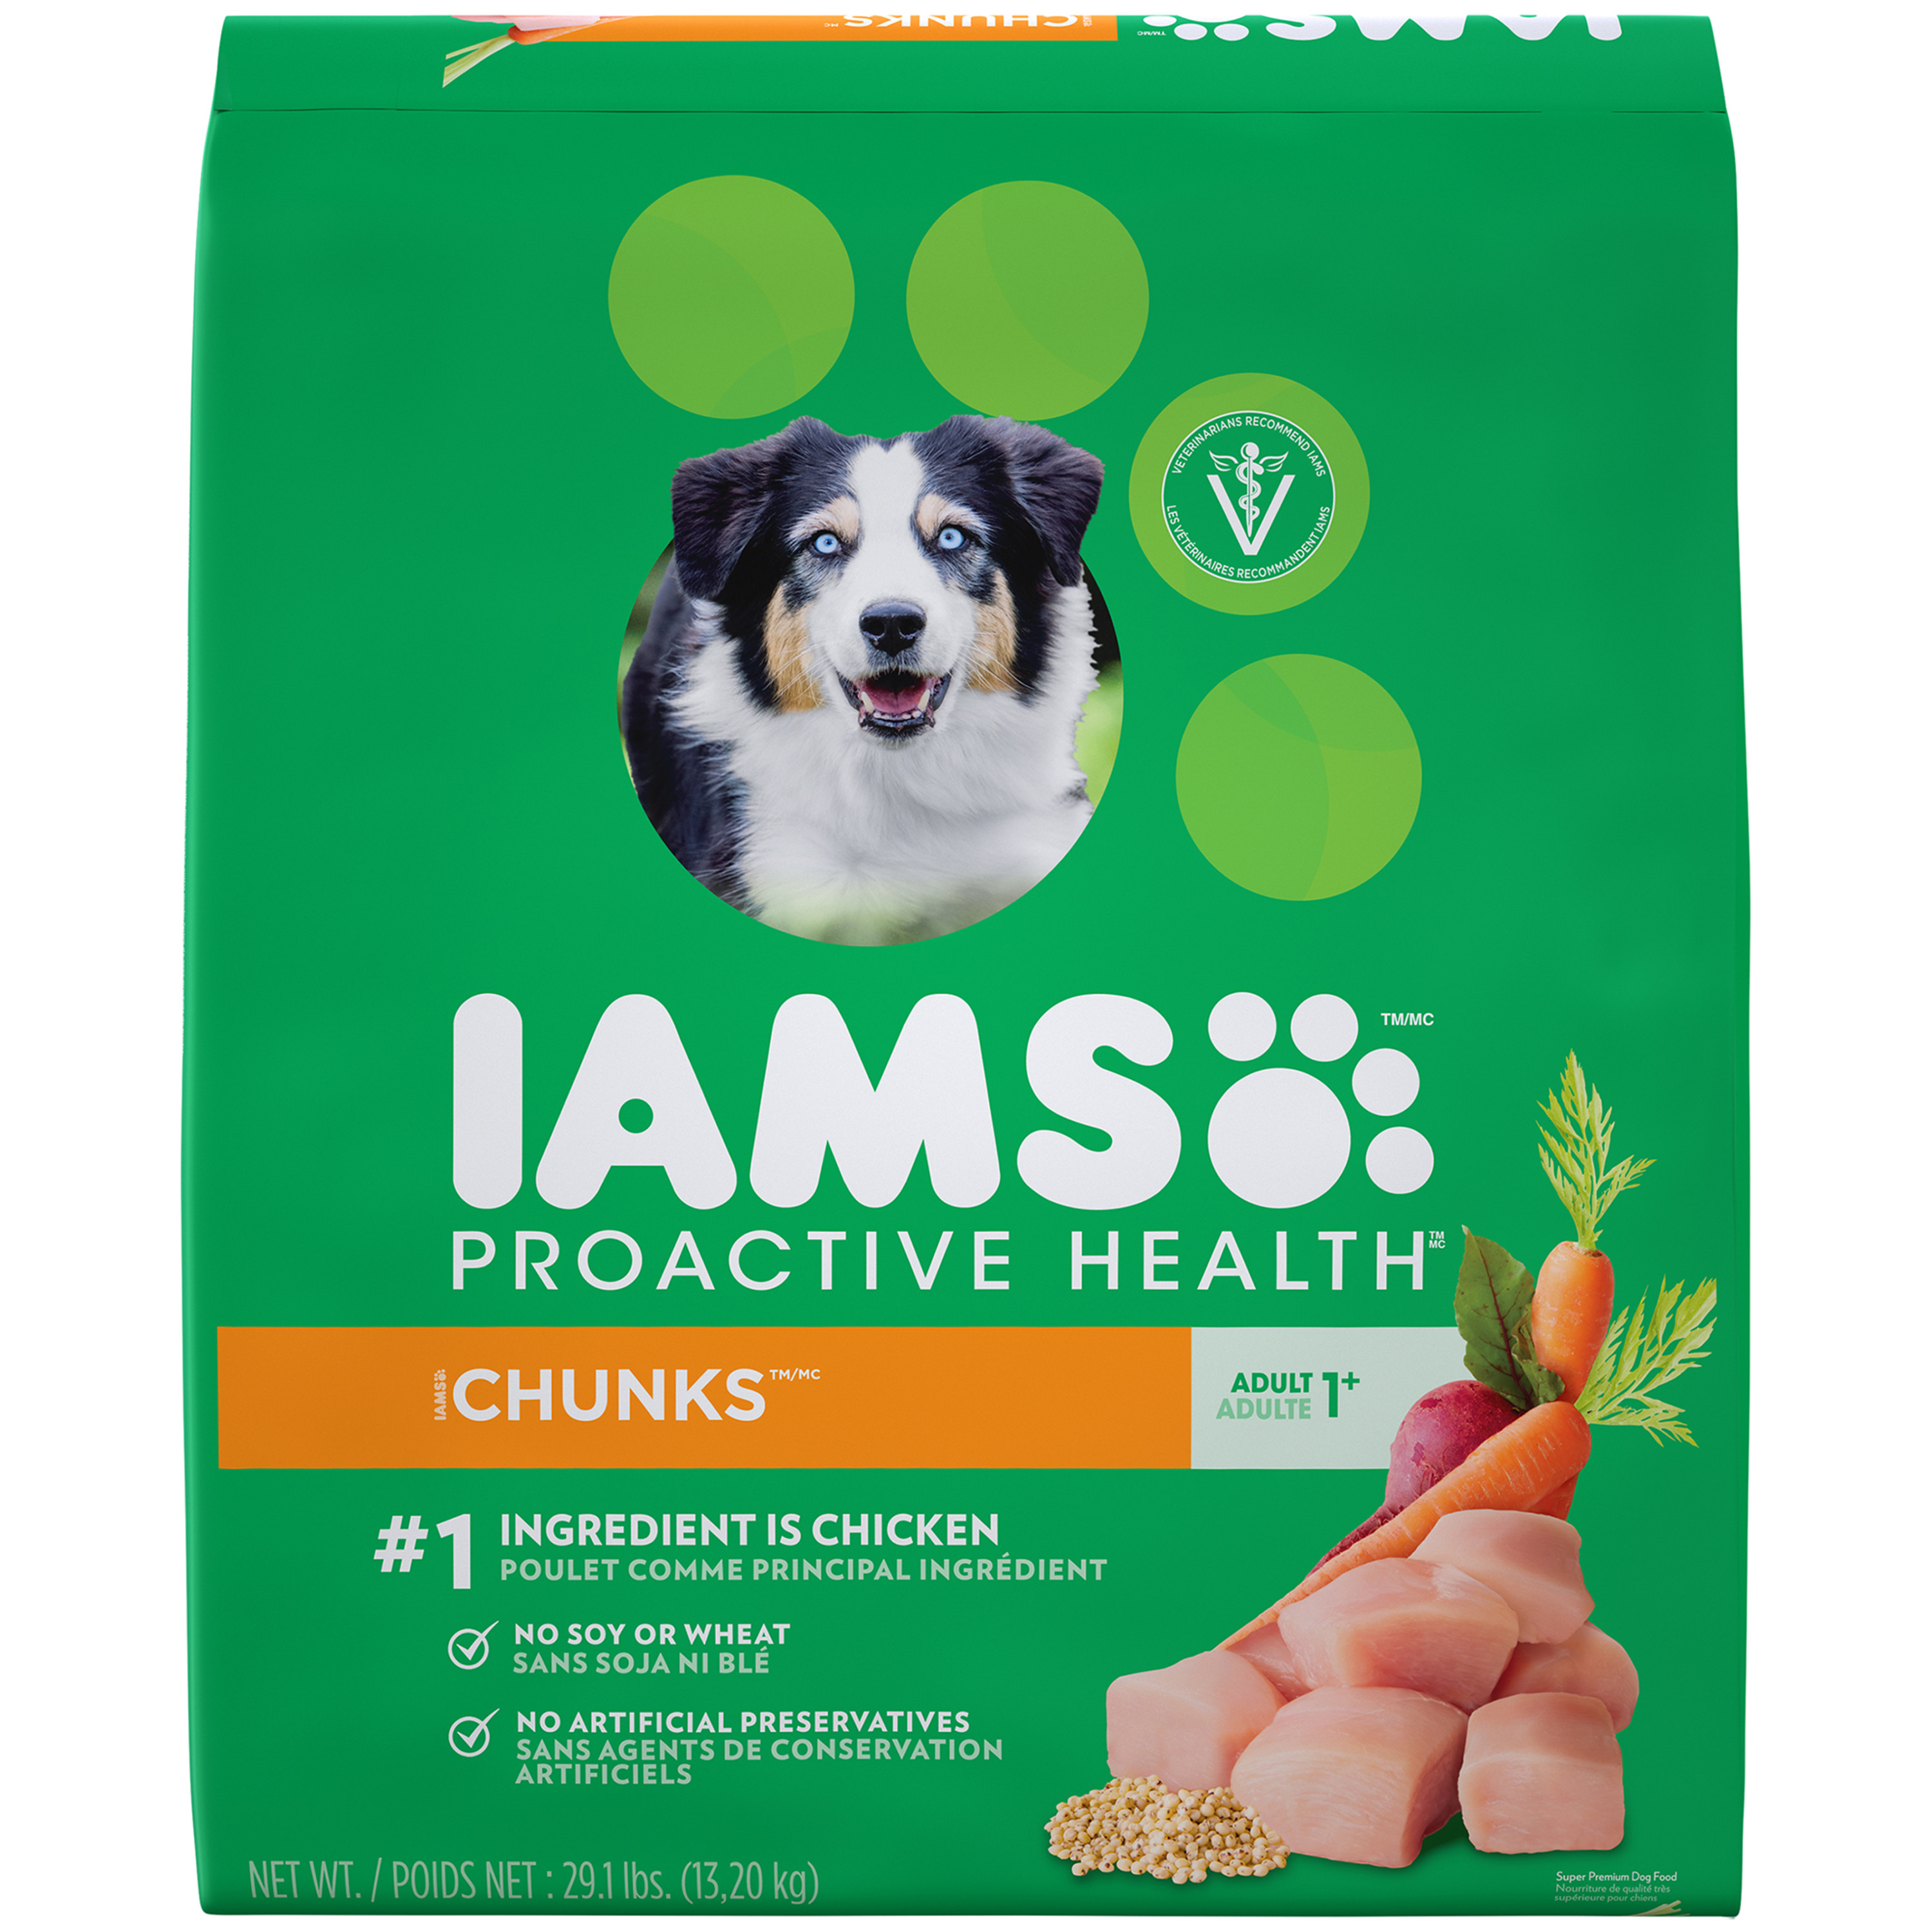 Iams Proactive Health Chunks Dry Dog Food, Chicken, 29.1 Lb